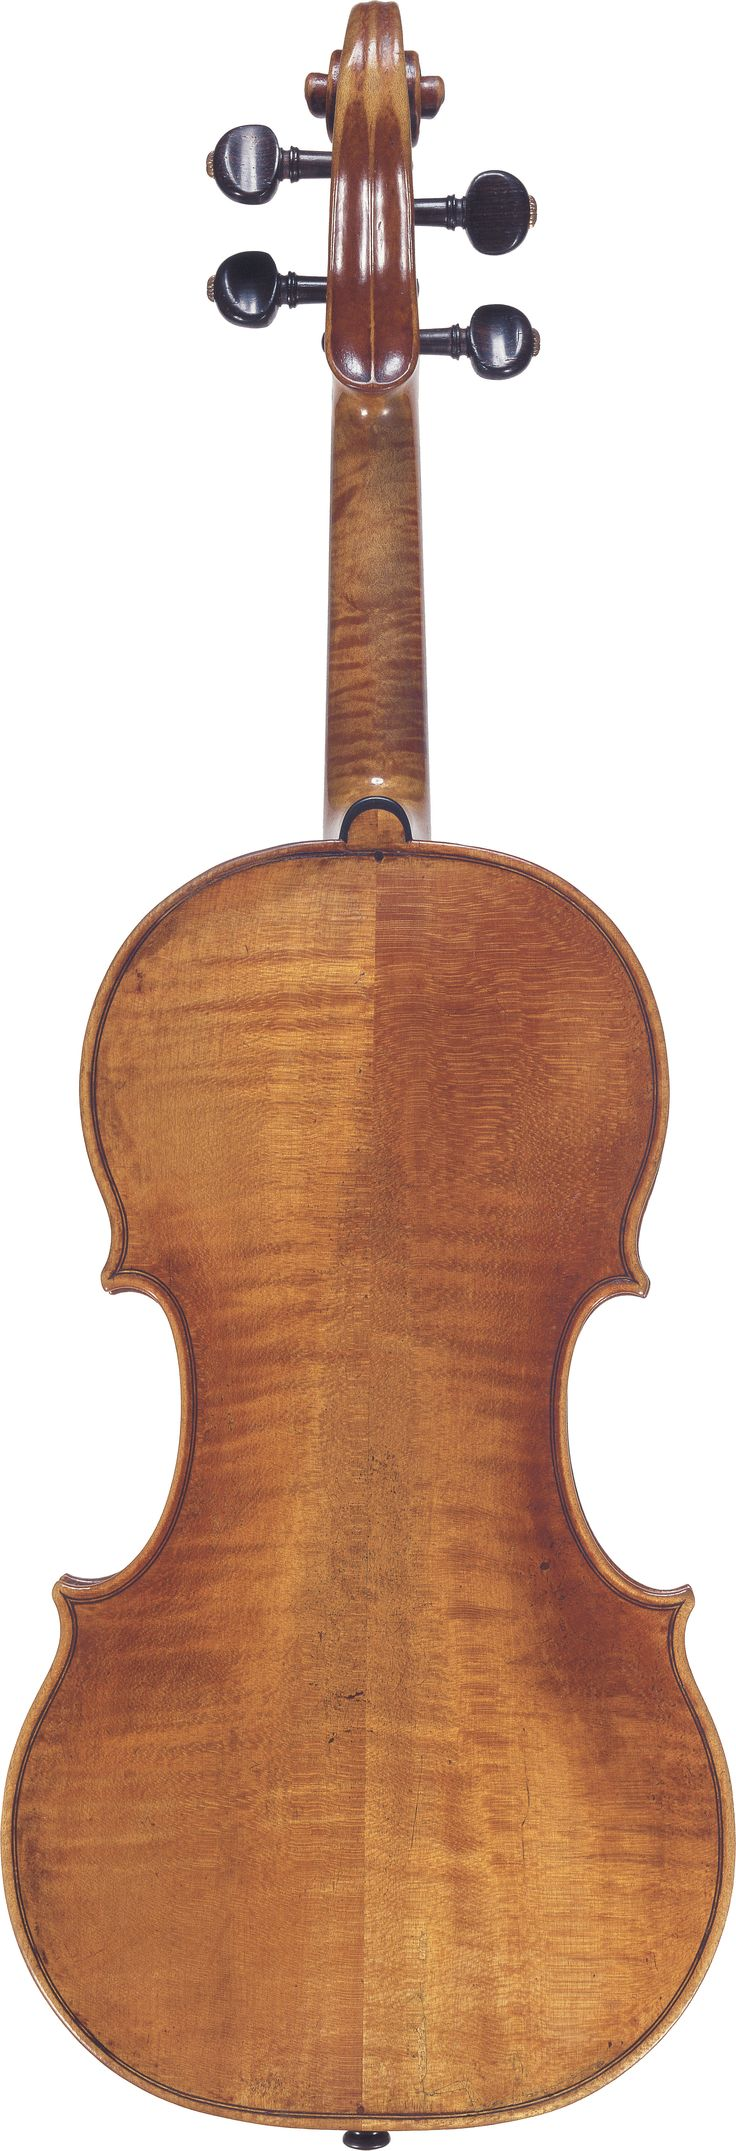 1665 Nicolo Amati Violin from The Four Centuries Gallery